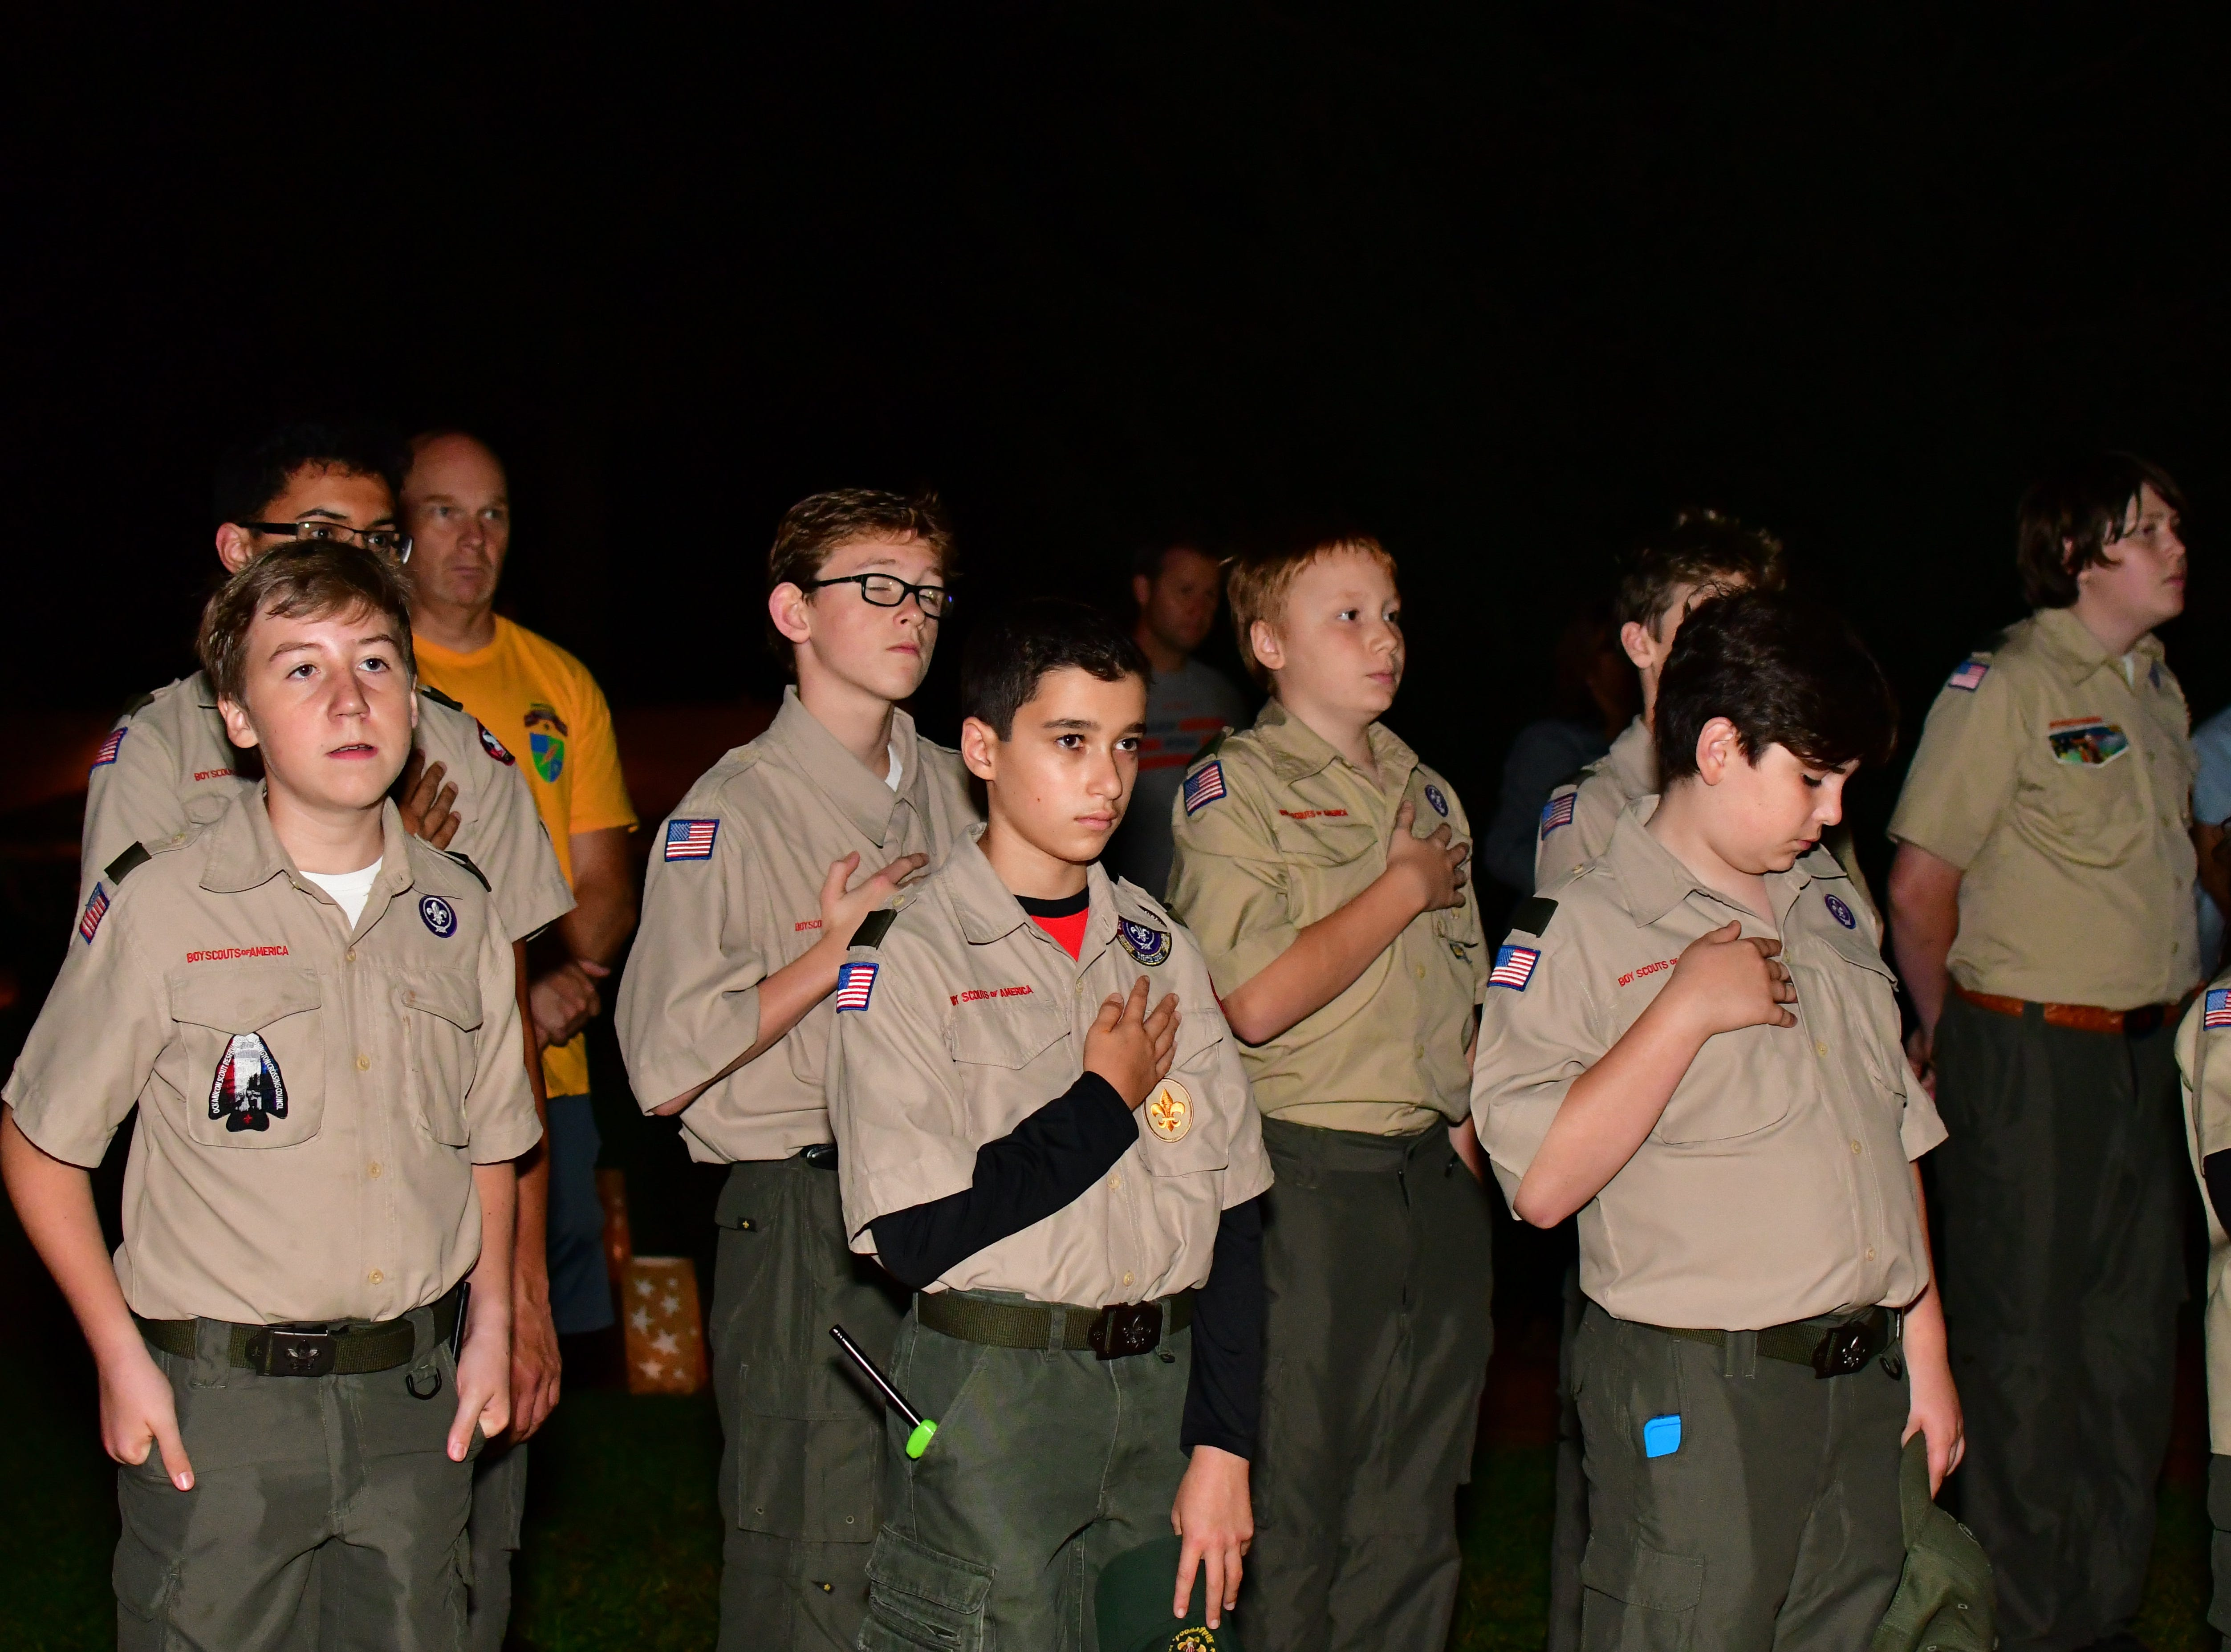 Boy Scouts at the ceremony. Mothers and families pay tribute to those who have lost their lives from service in the military.  At Van Neste Park in Ridgewood on Sept. 30.